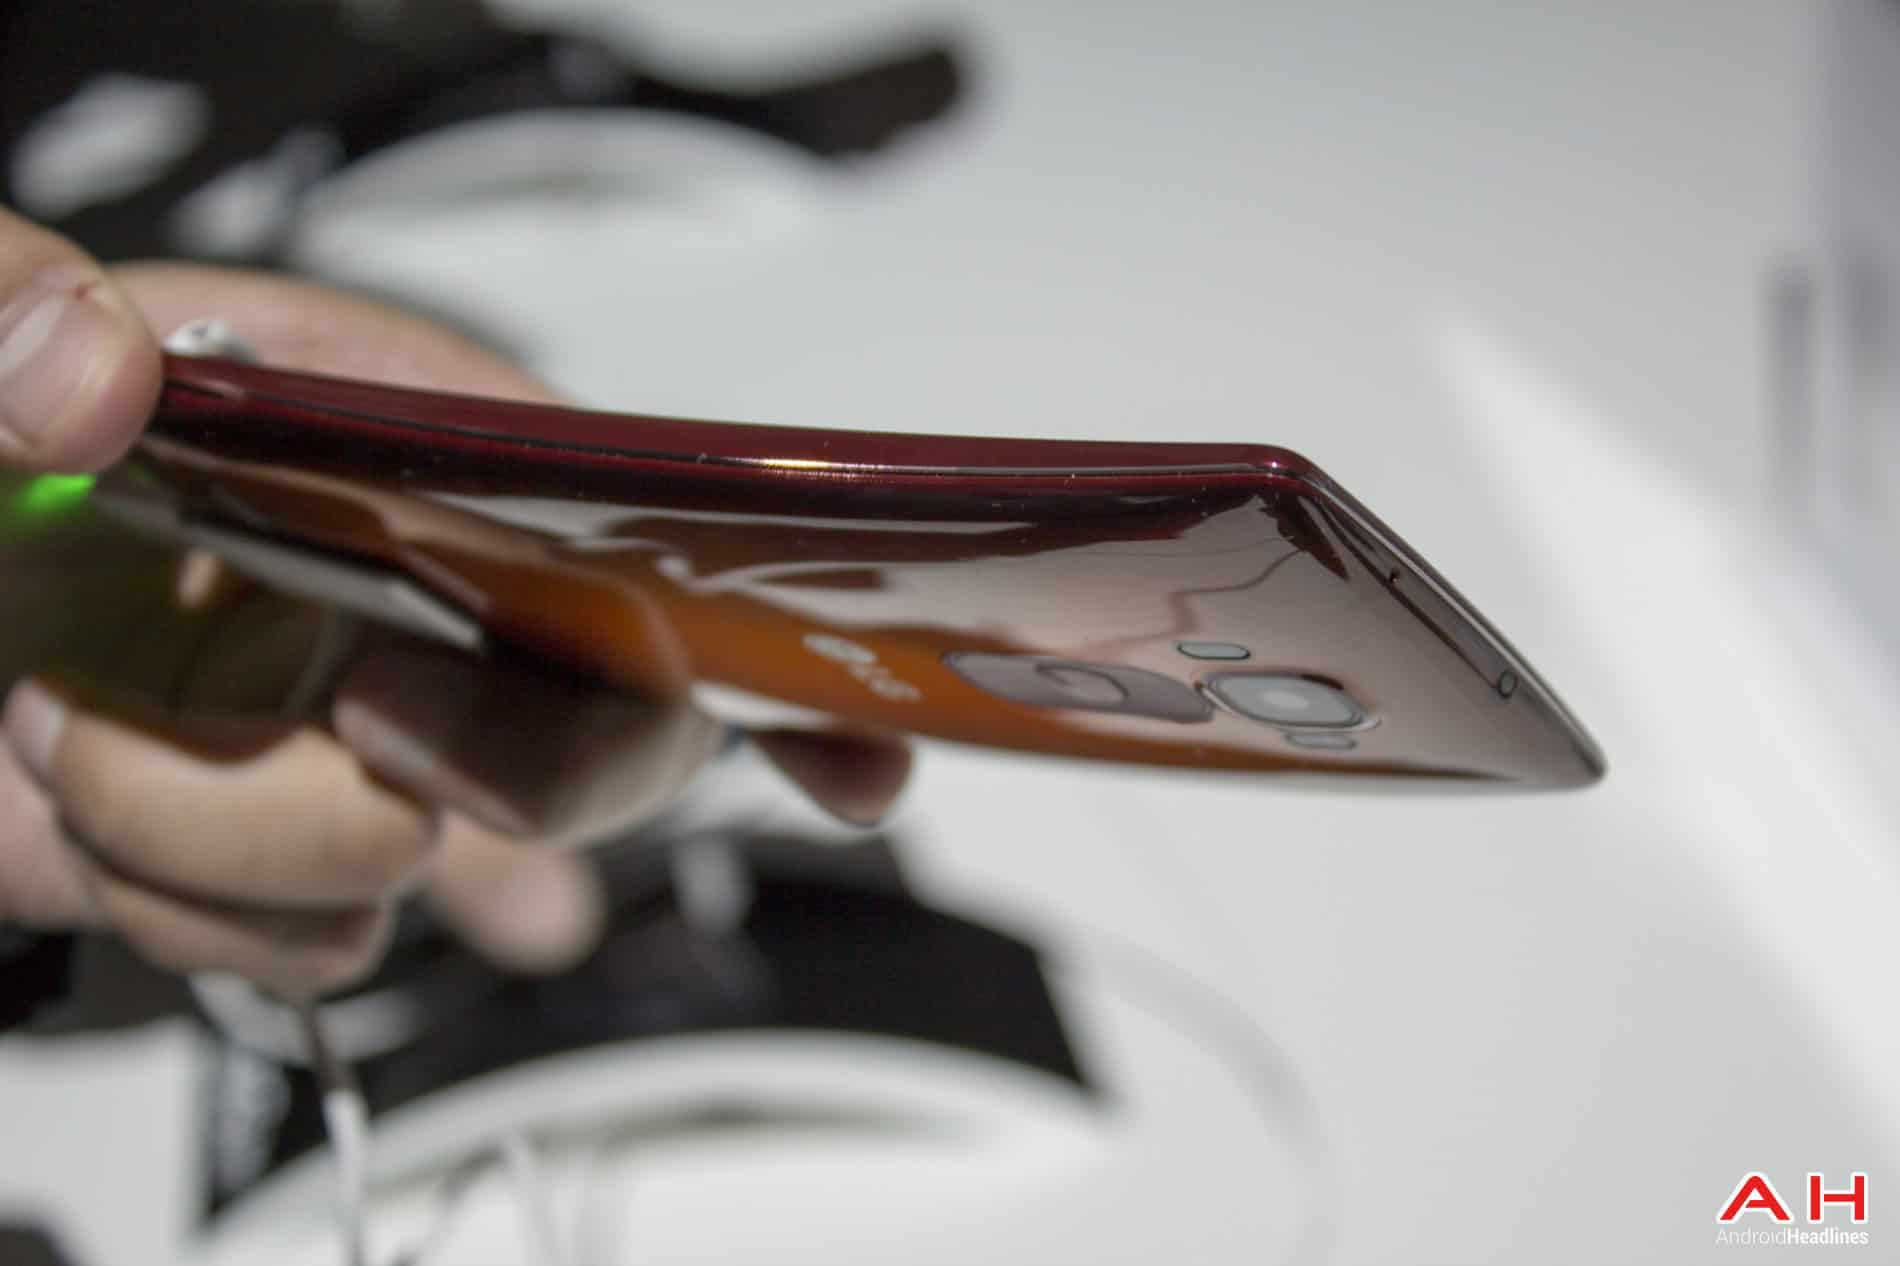 LG G Flex 2 Hands On AH 12